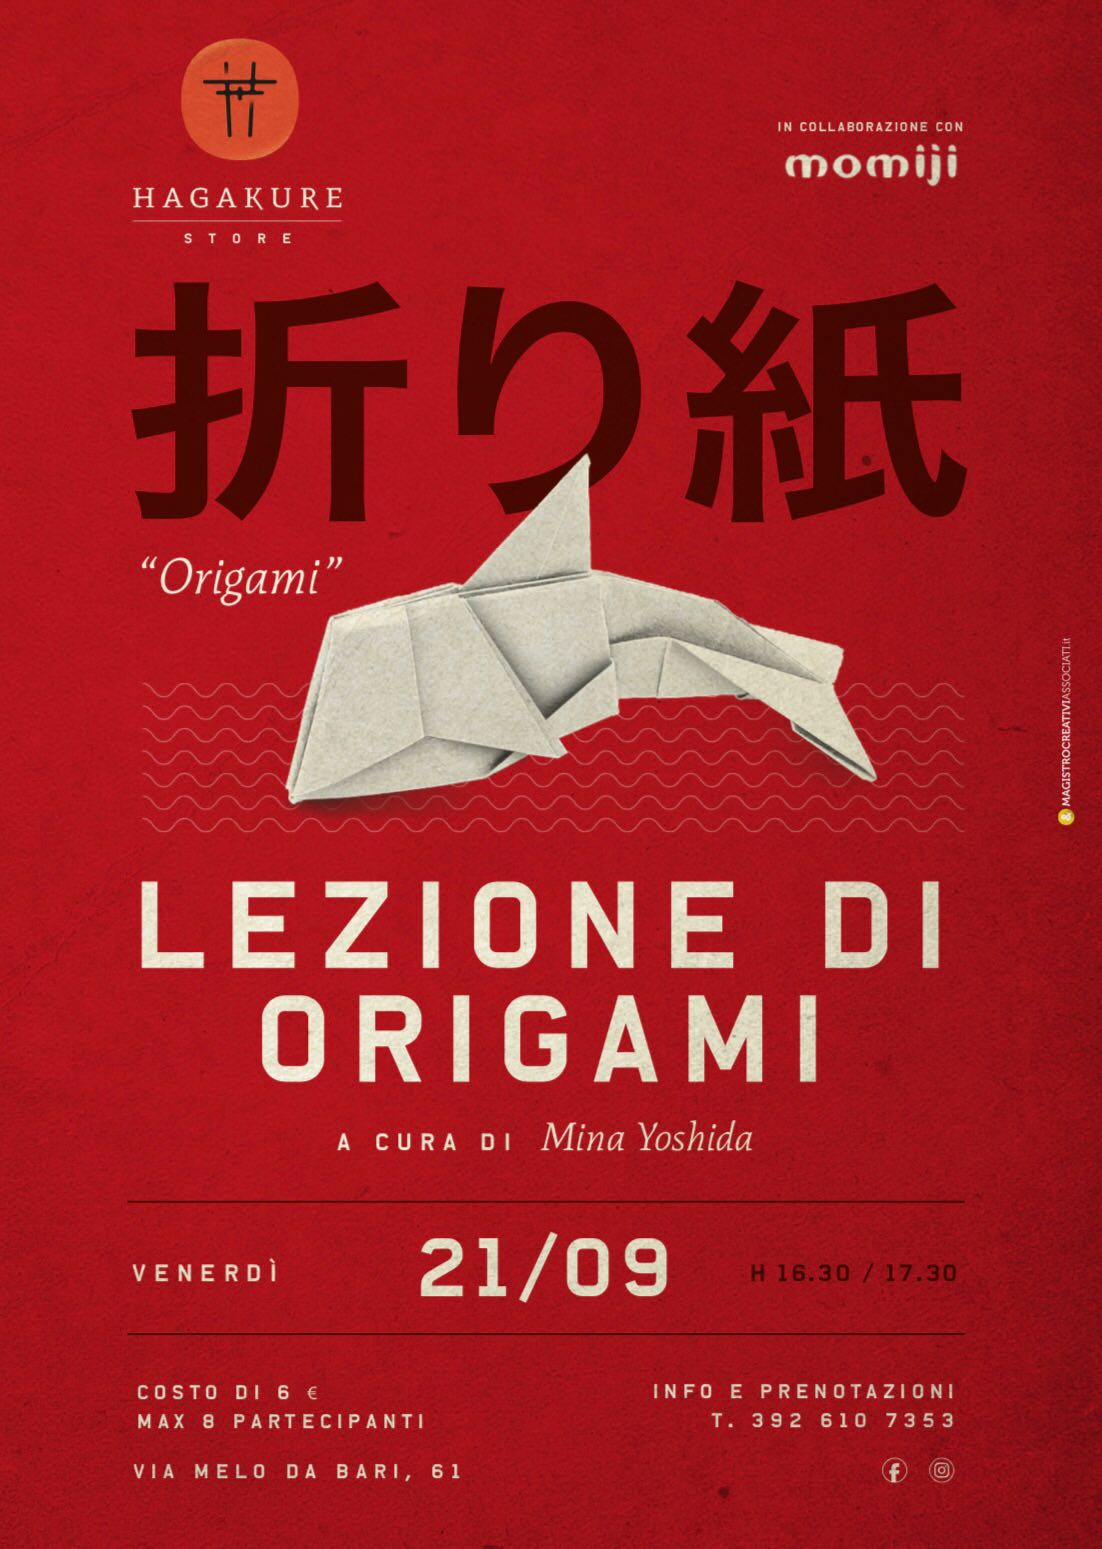 SAVE THE DATE - LEZIONE DI ORIGAMI